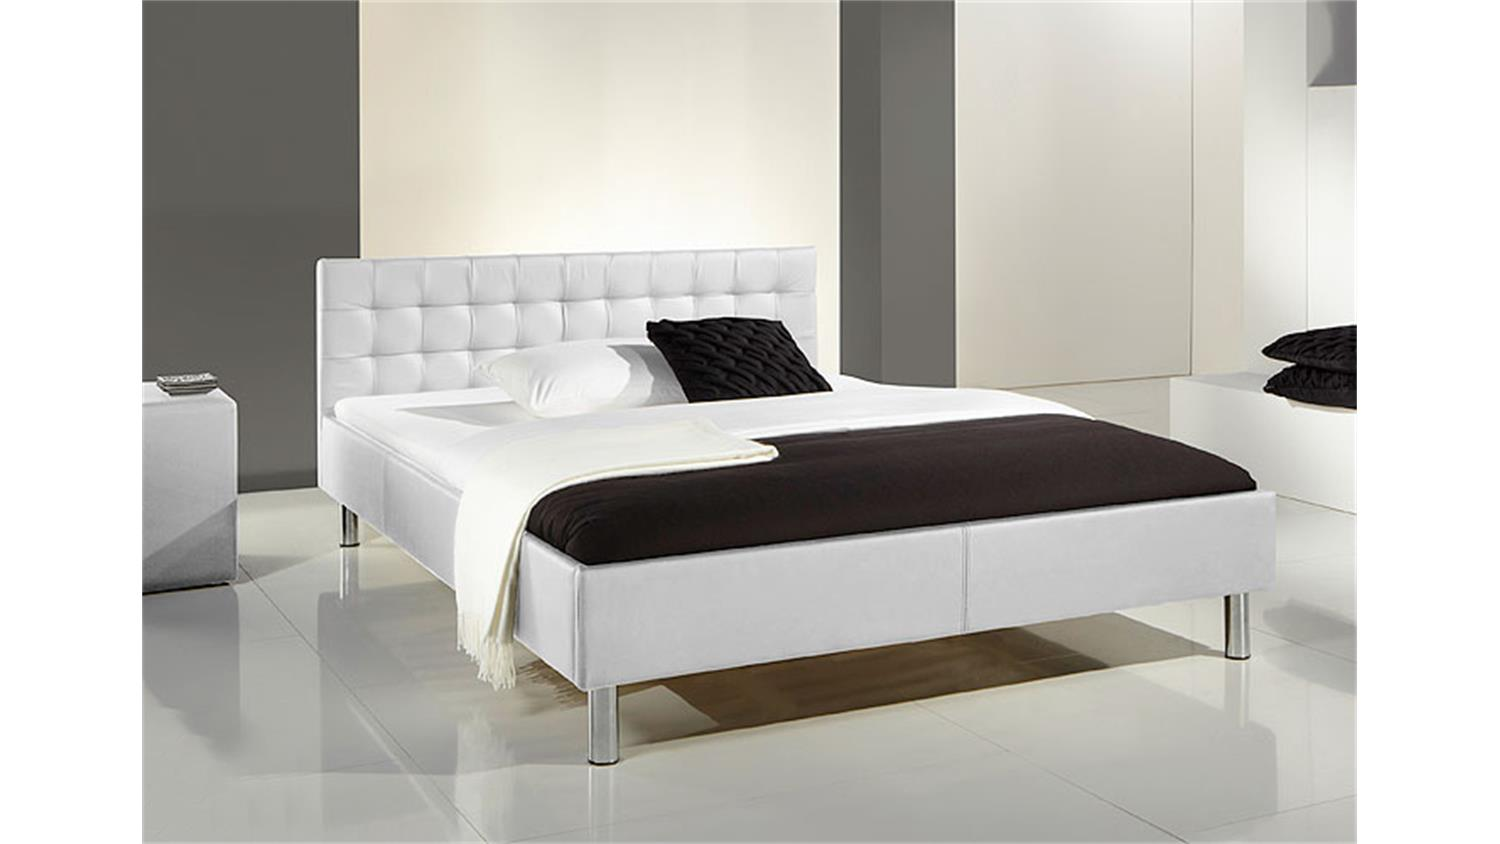 rauch betten weiss 140x200 heimdesign innenarchitektur. Black Bedroom Furniture Sets. Home Design Ideas